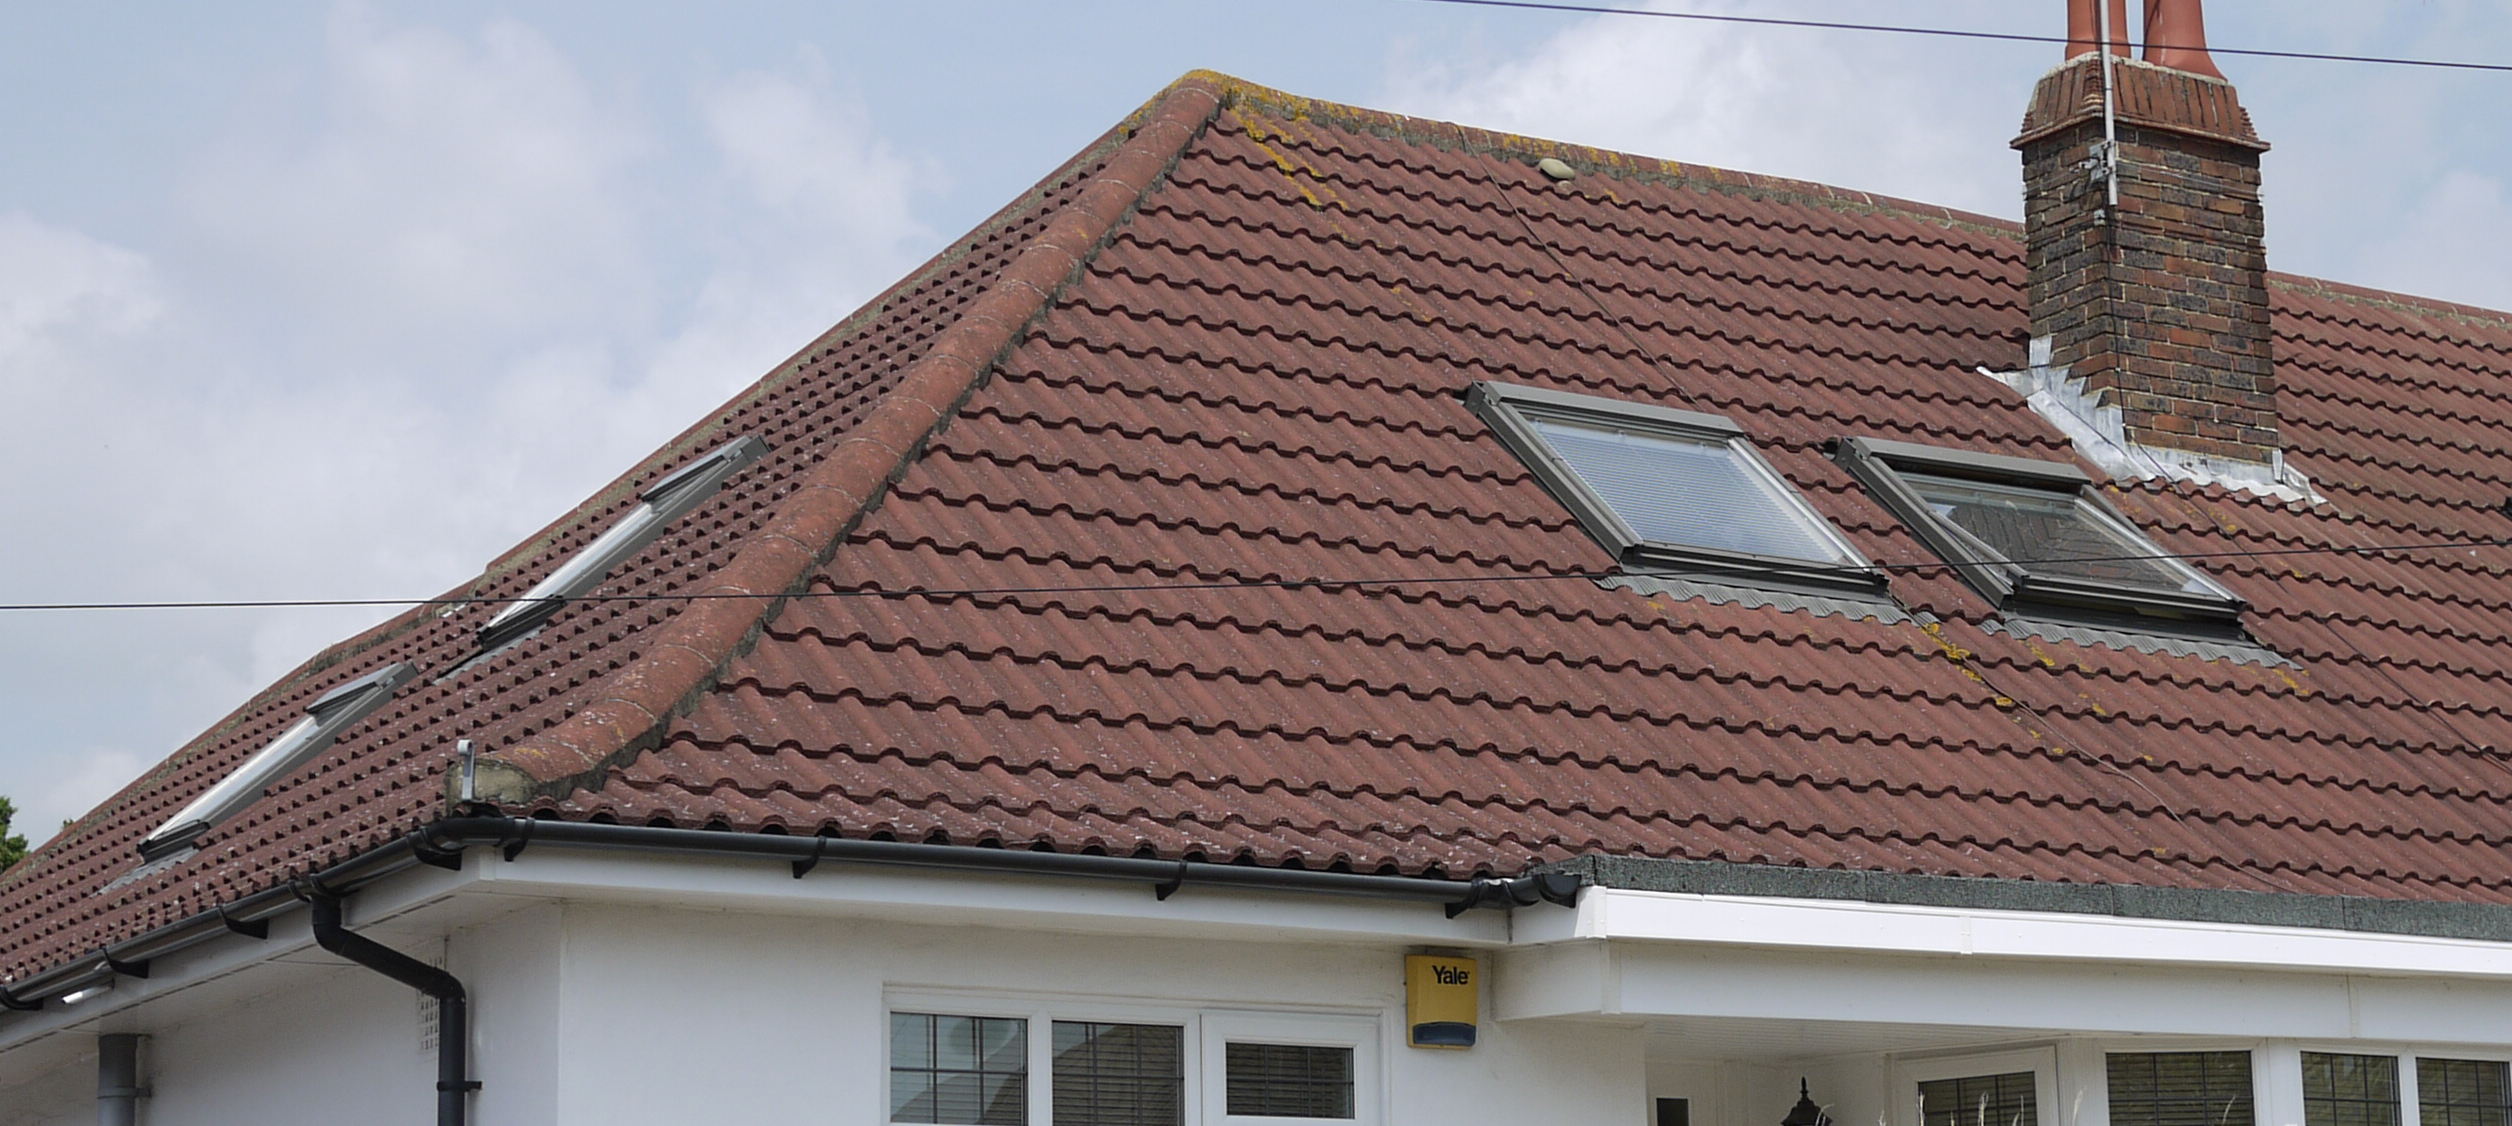 Types Of Roofs On Loft Conversions Jackson Loft